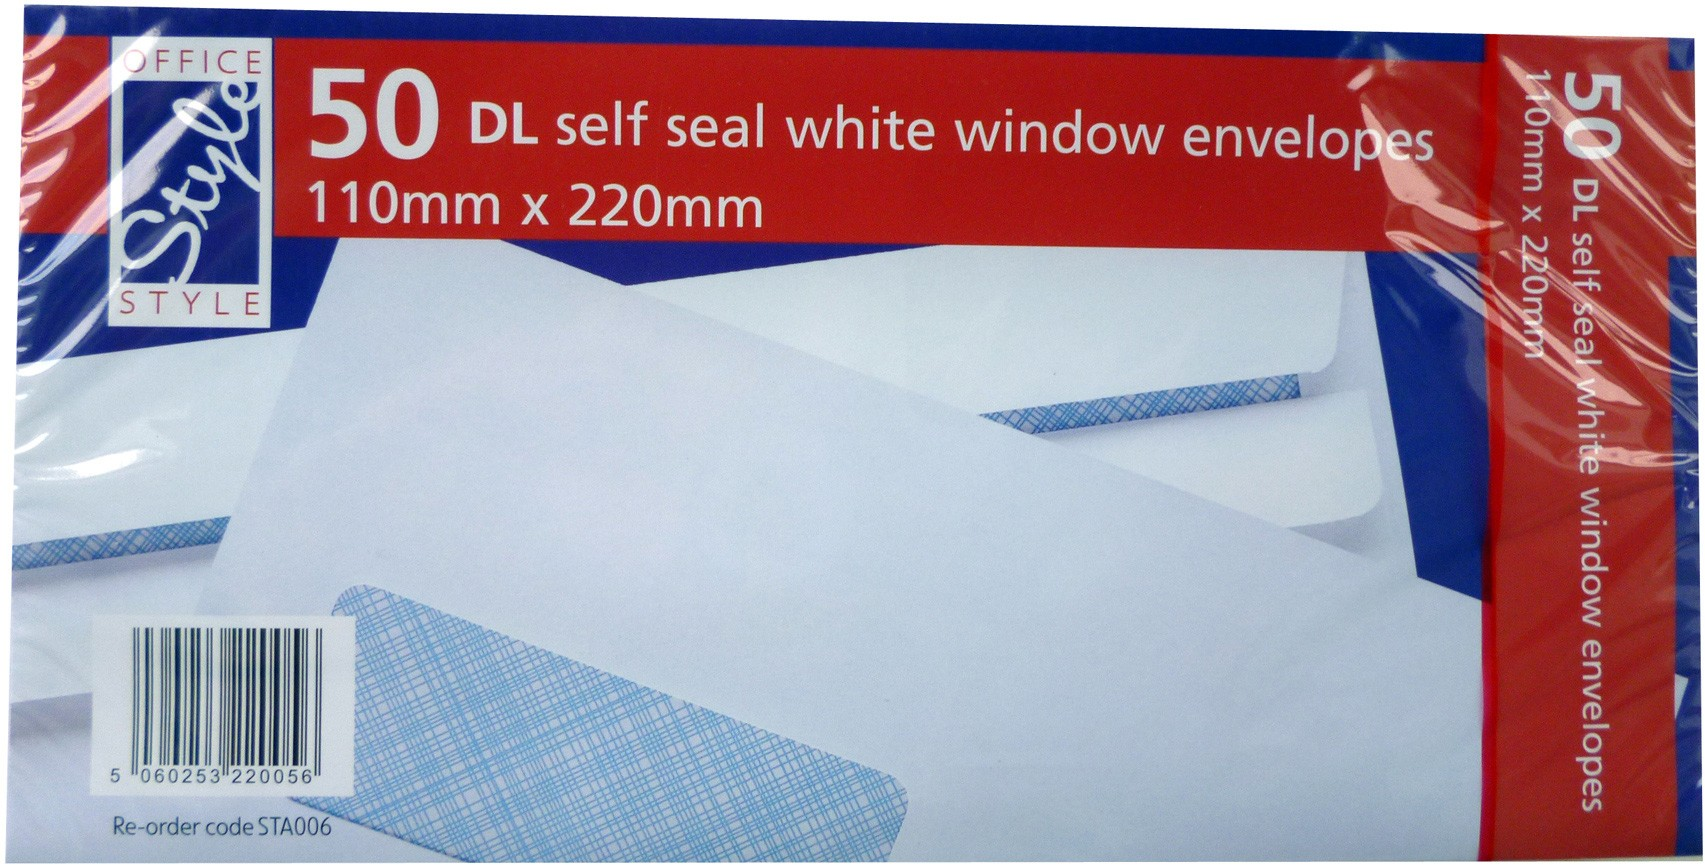 self seal white window envelopes